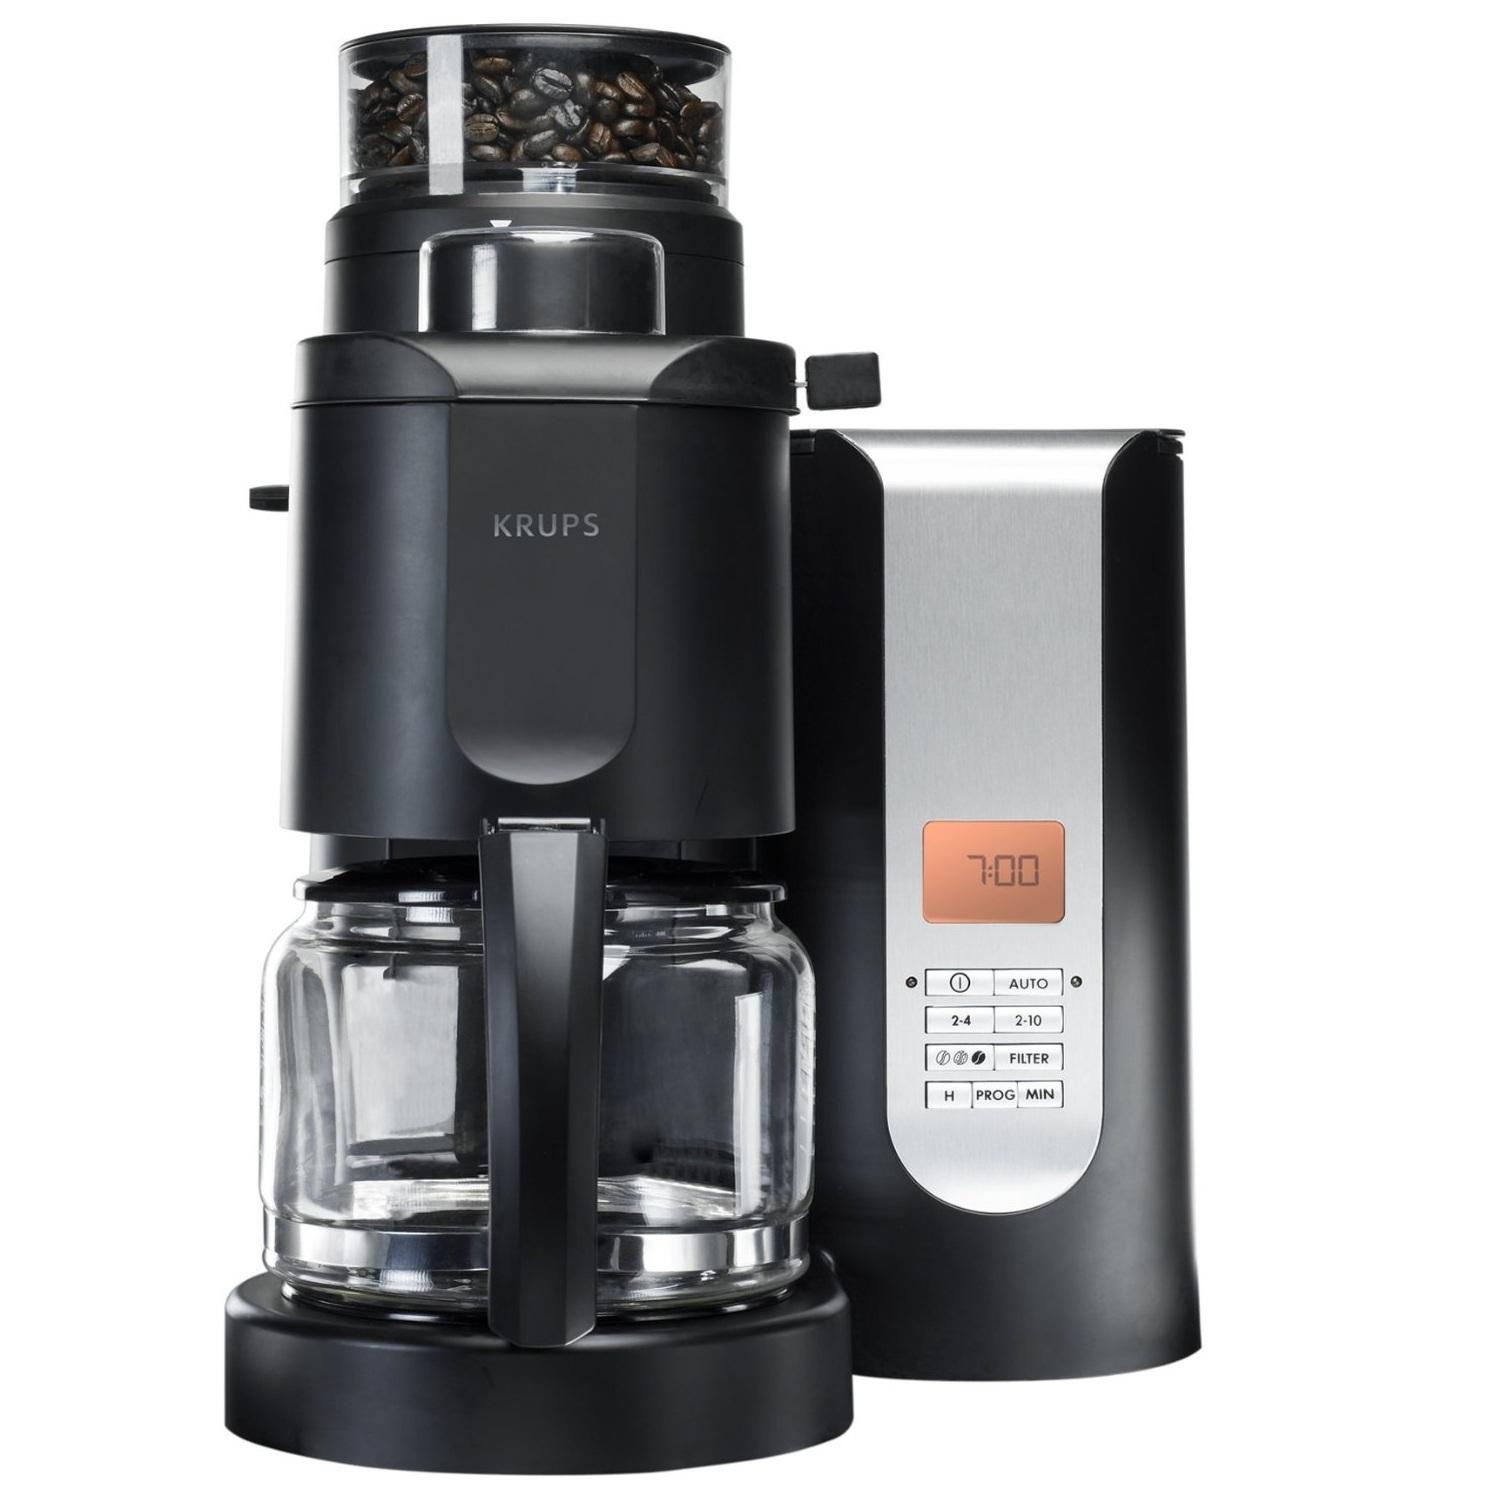 Drip Coffee Maker Problems : Amazon.com: KRUPS KM7005 Grind and Brew Coffee Maker with Stainless Steel Conical Burr Grinder ...